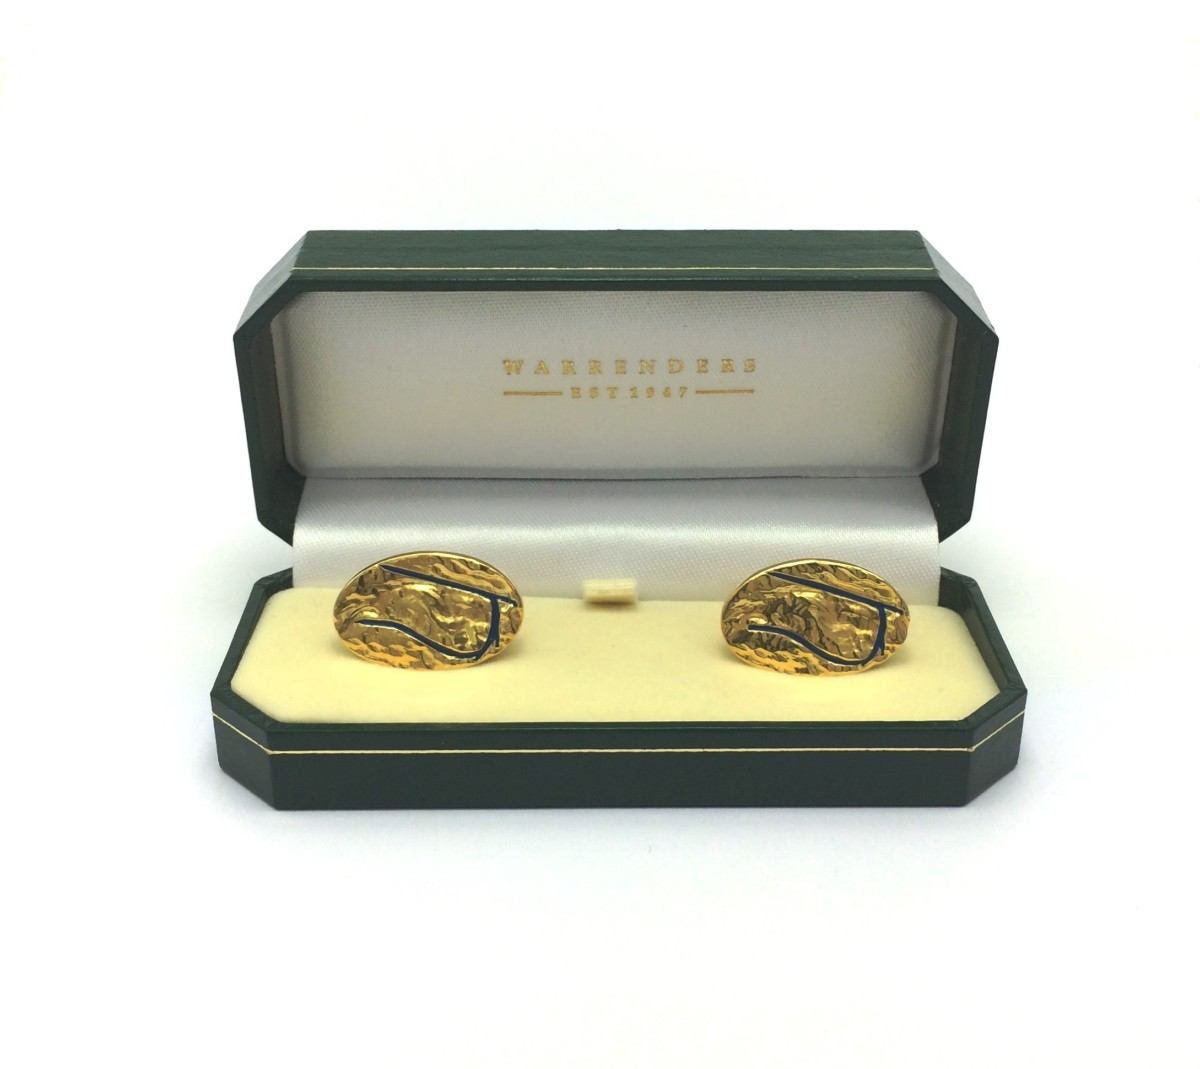 Warrenders Jewellers bespoke cufflinks for Epsom Downs